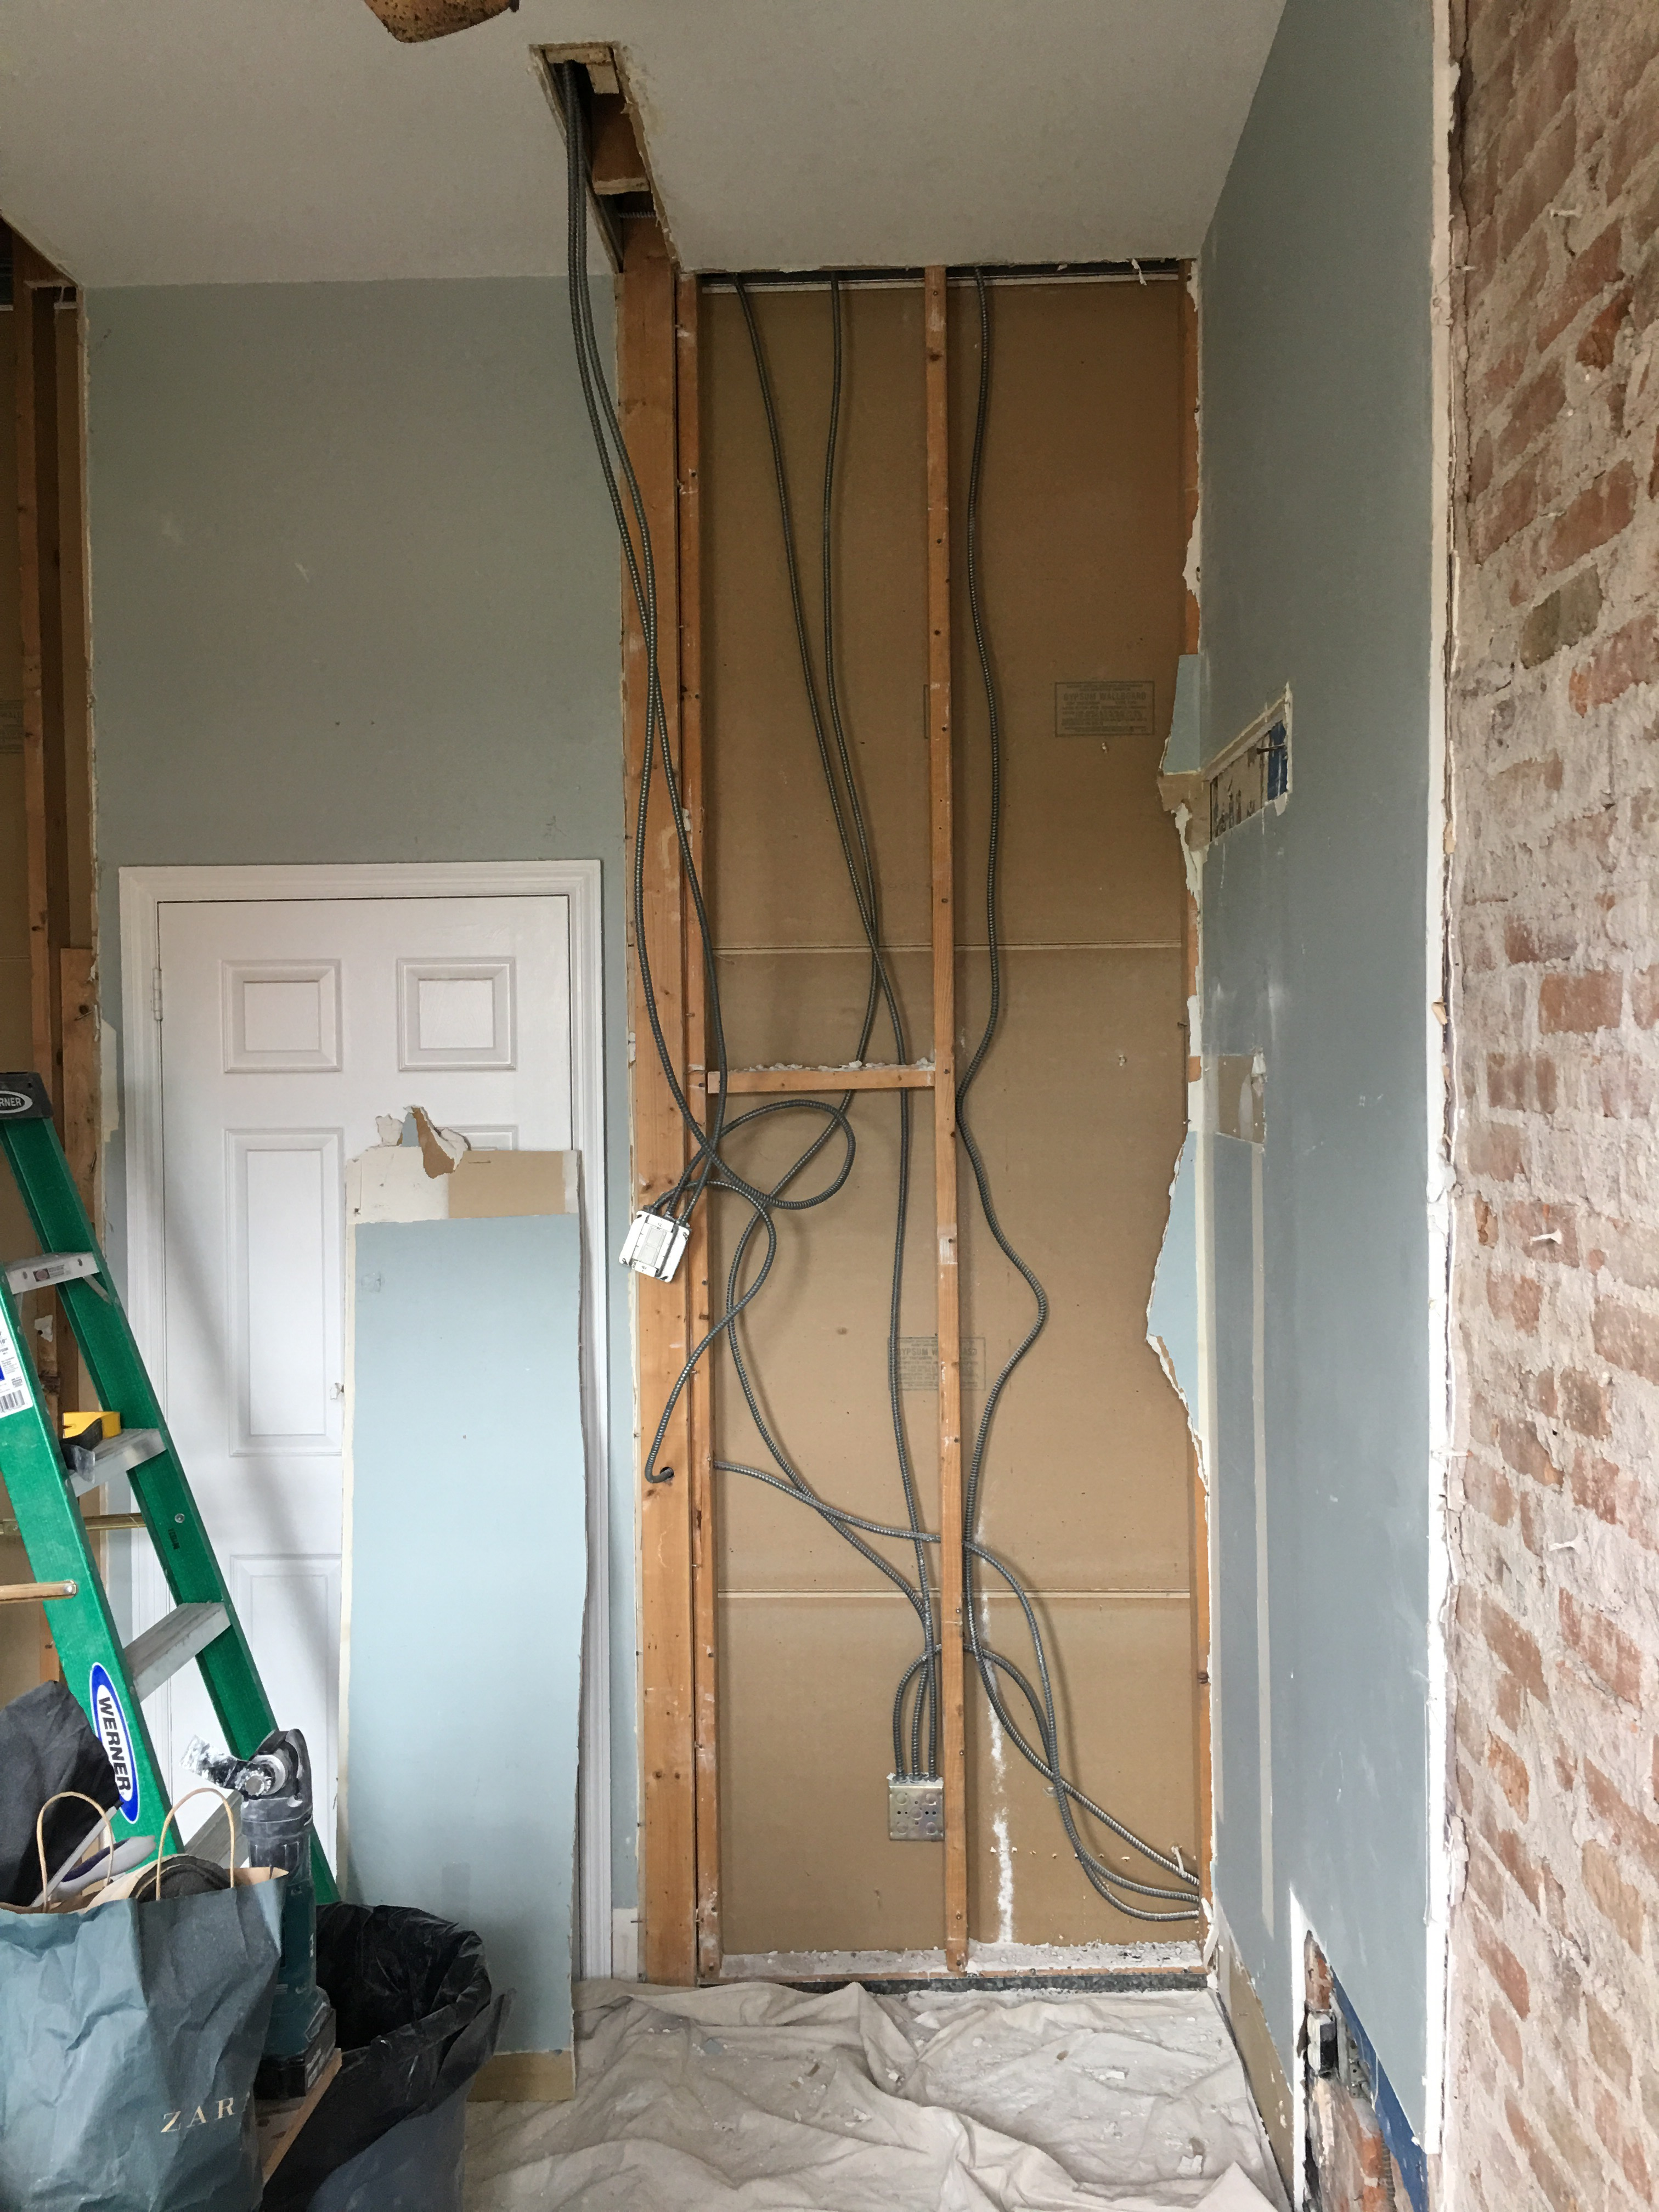 Day 8 412 11th Street Apartment 4r Wiring Behind Plaster Walls Opened Up The Wall Old Closet What A Nest Of